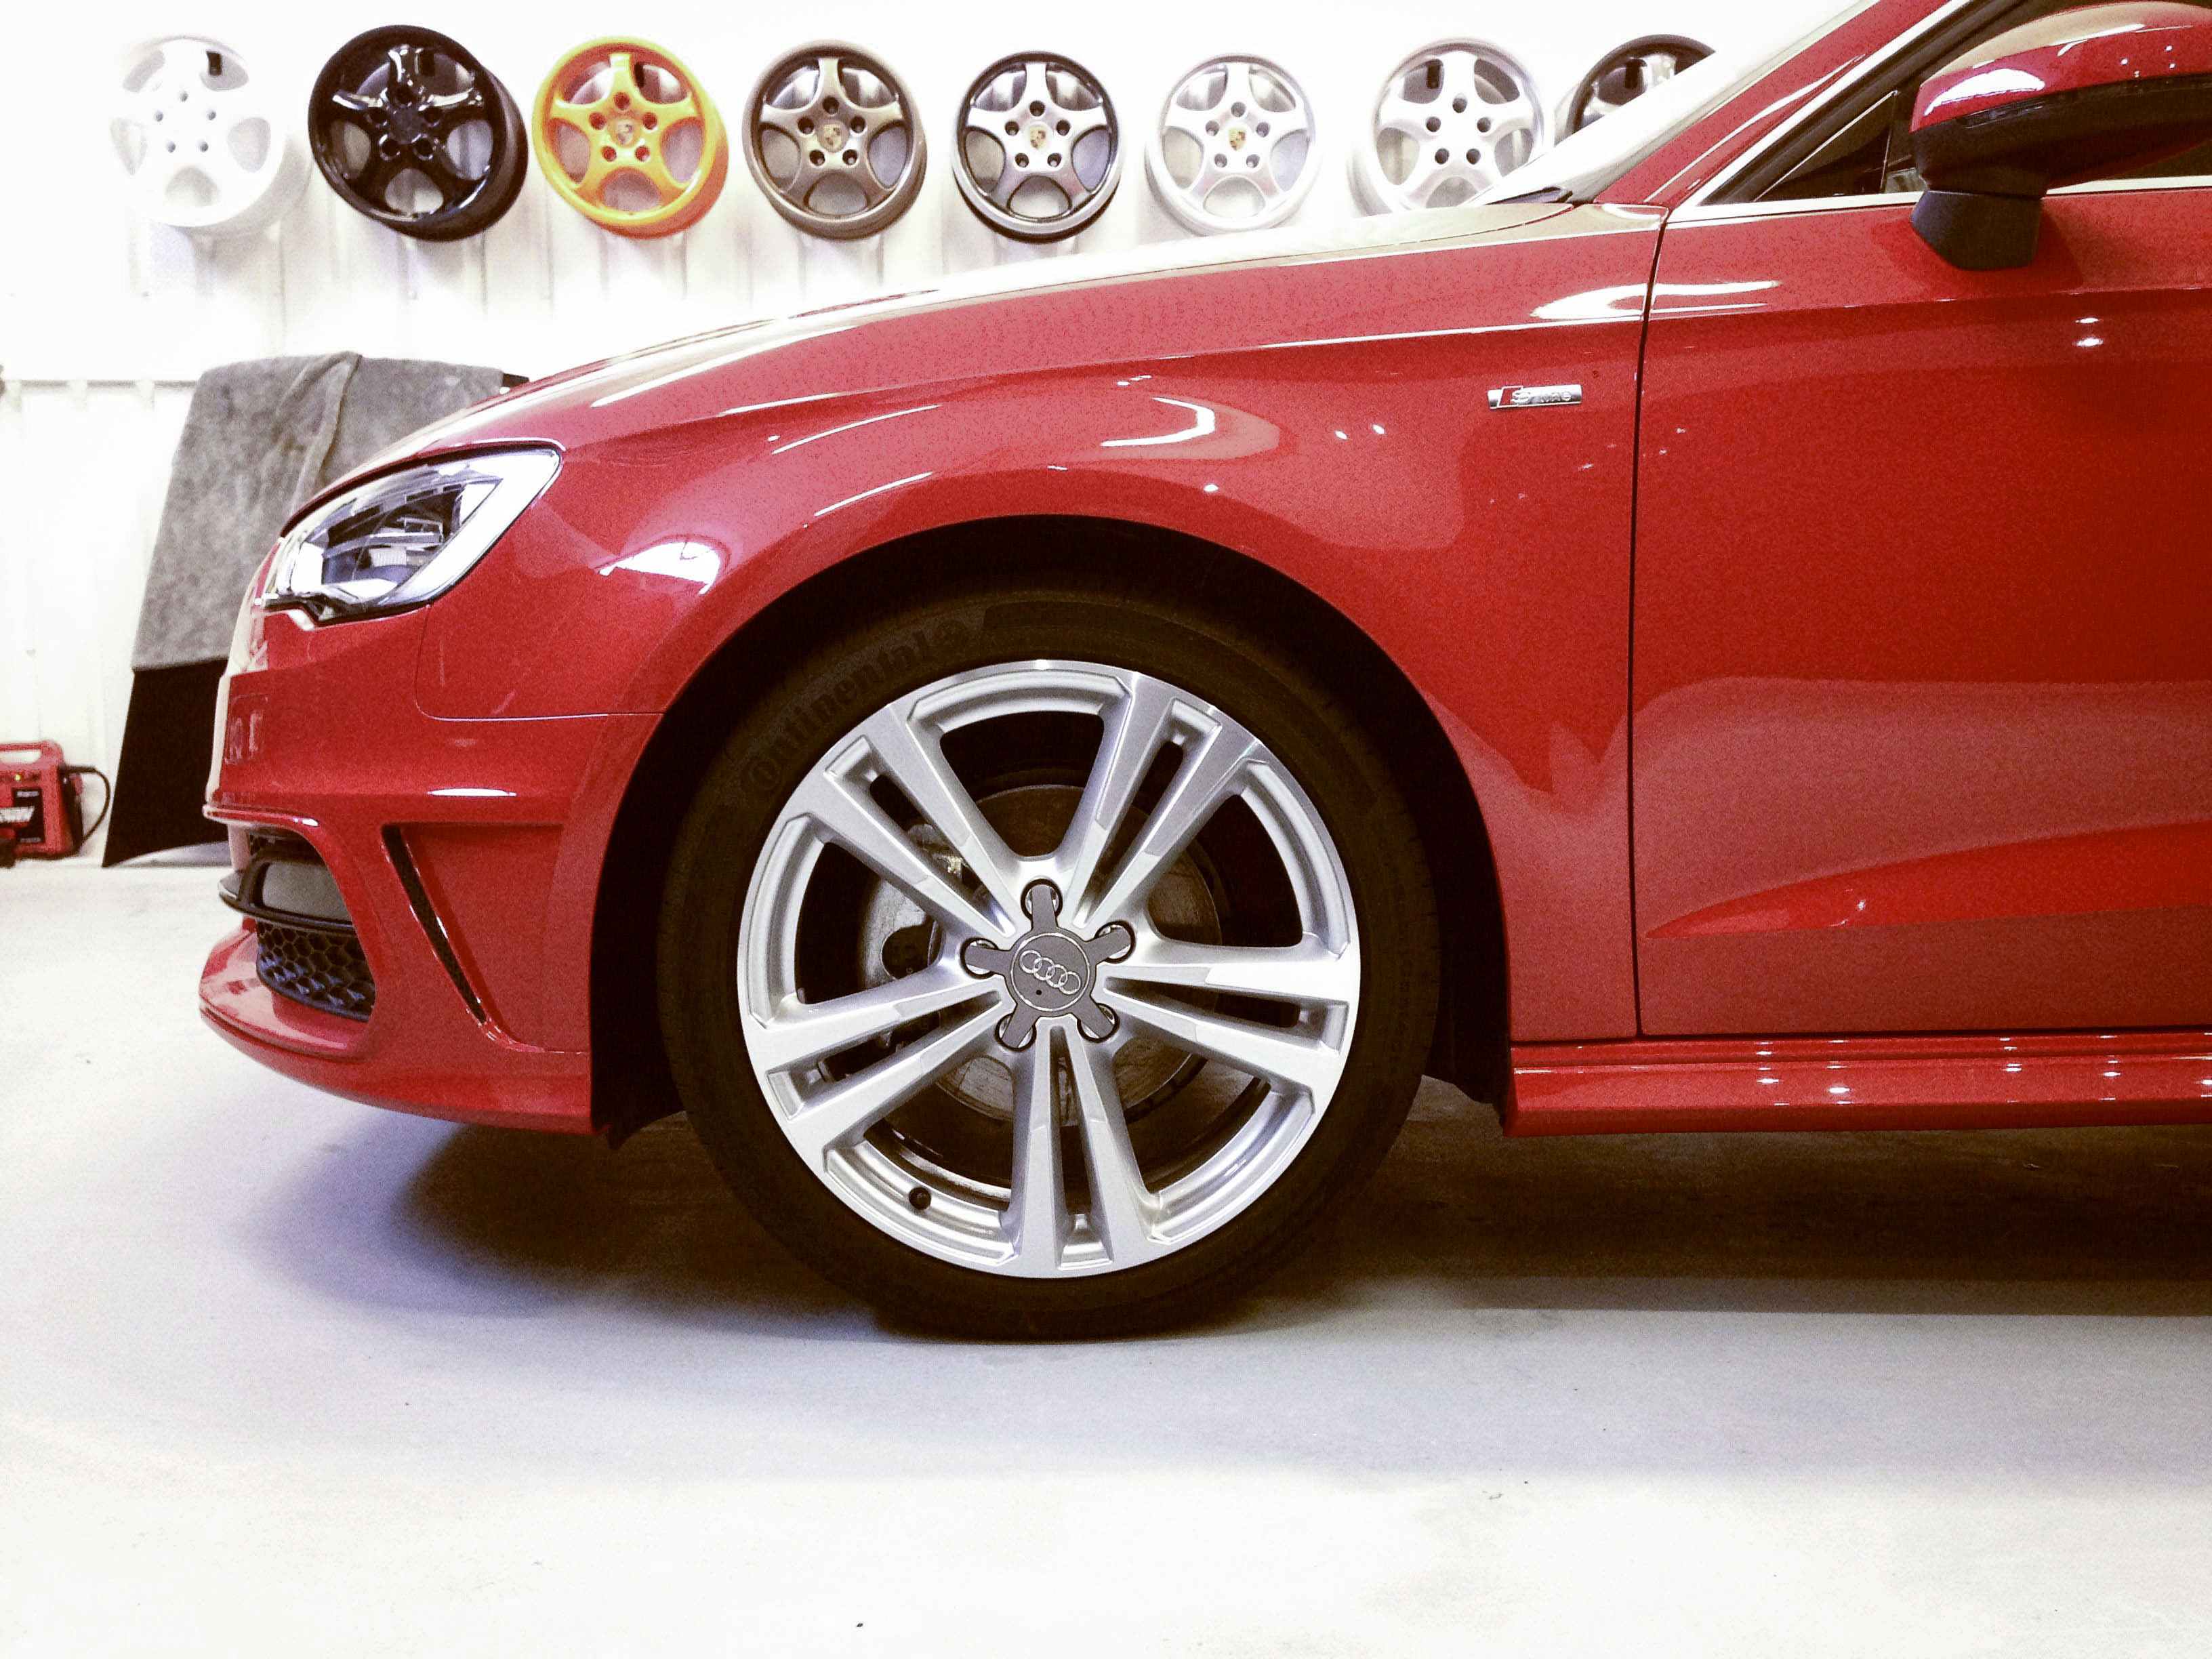 Audi A3 (Misano Red) – Wheel